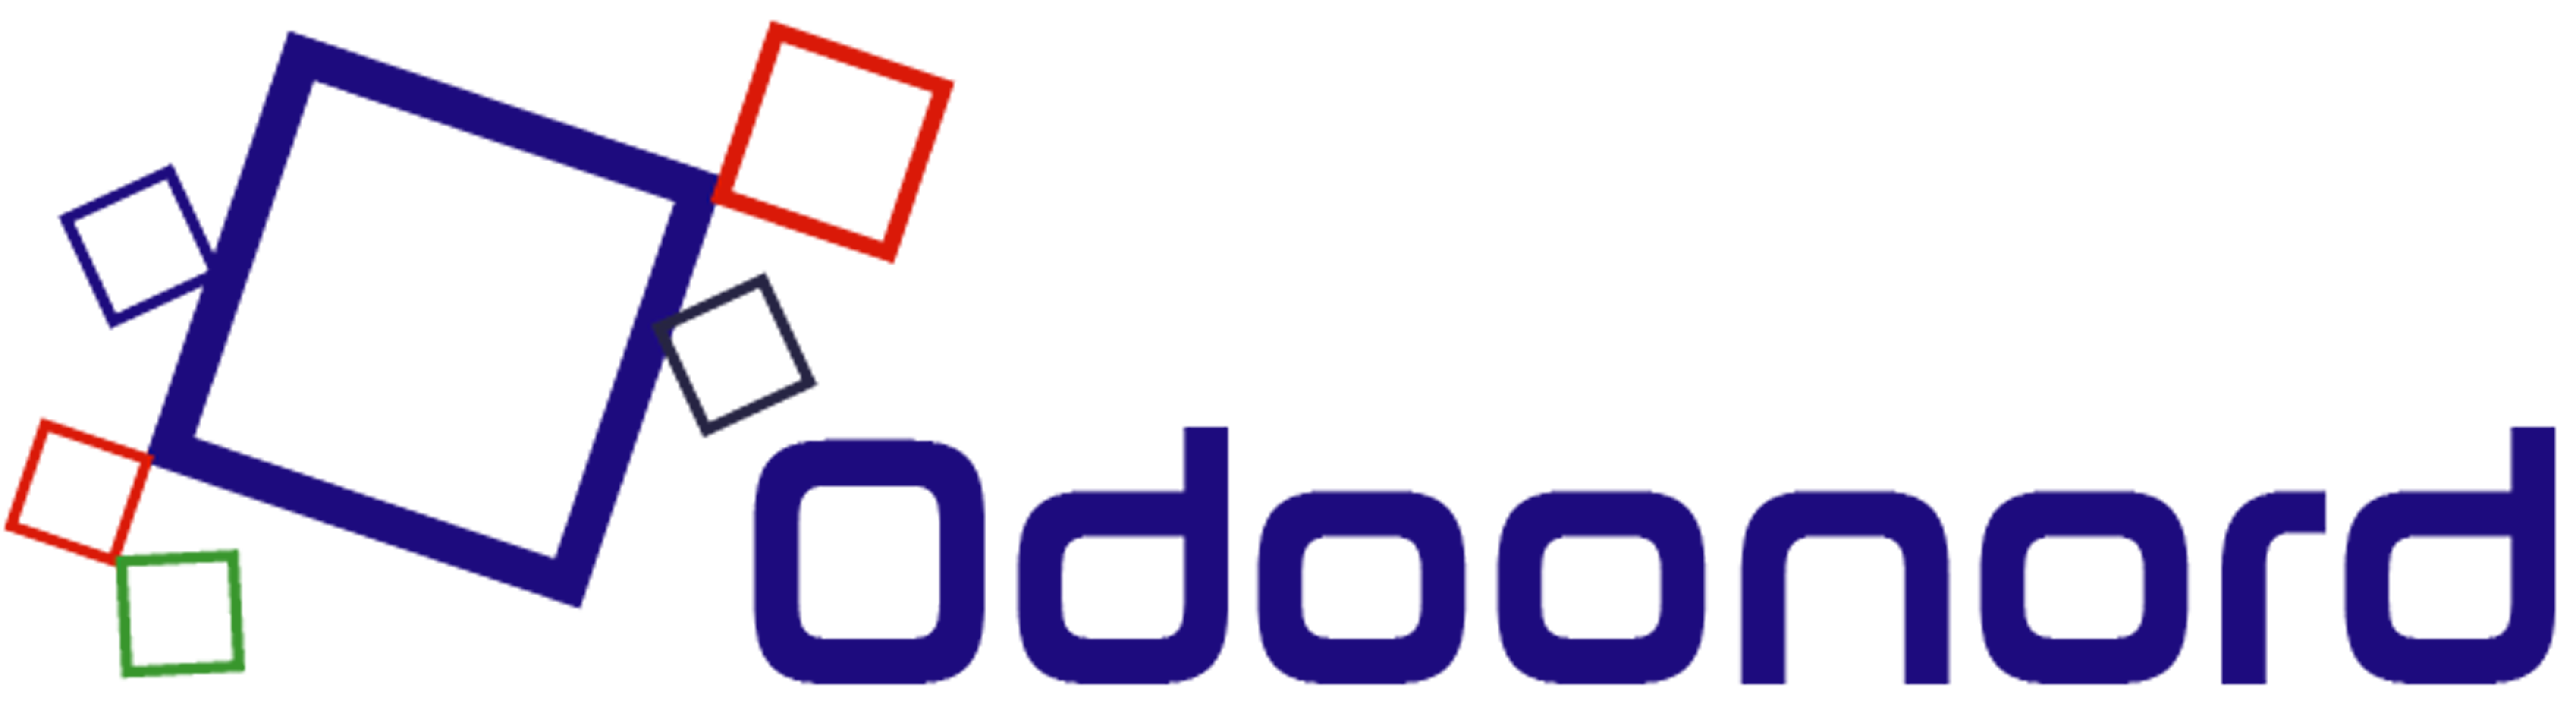 Odoonord